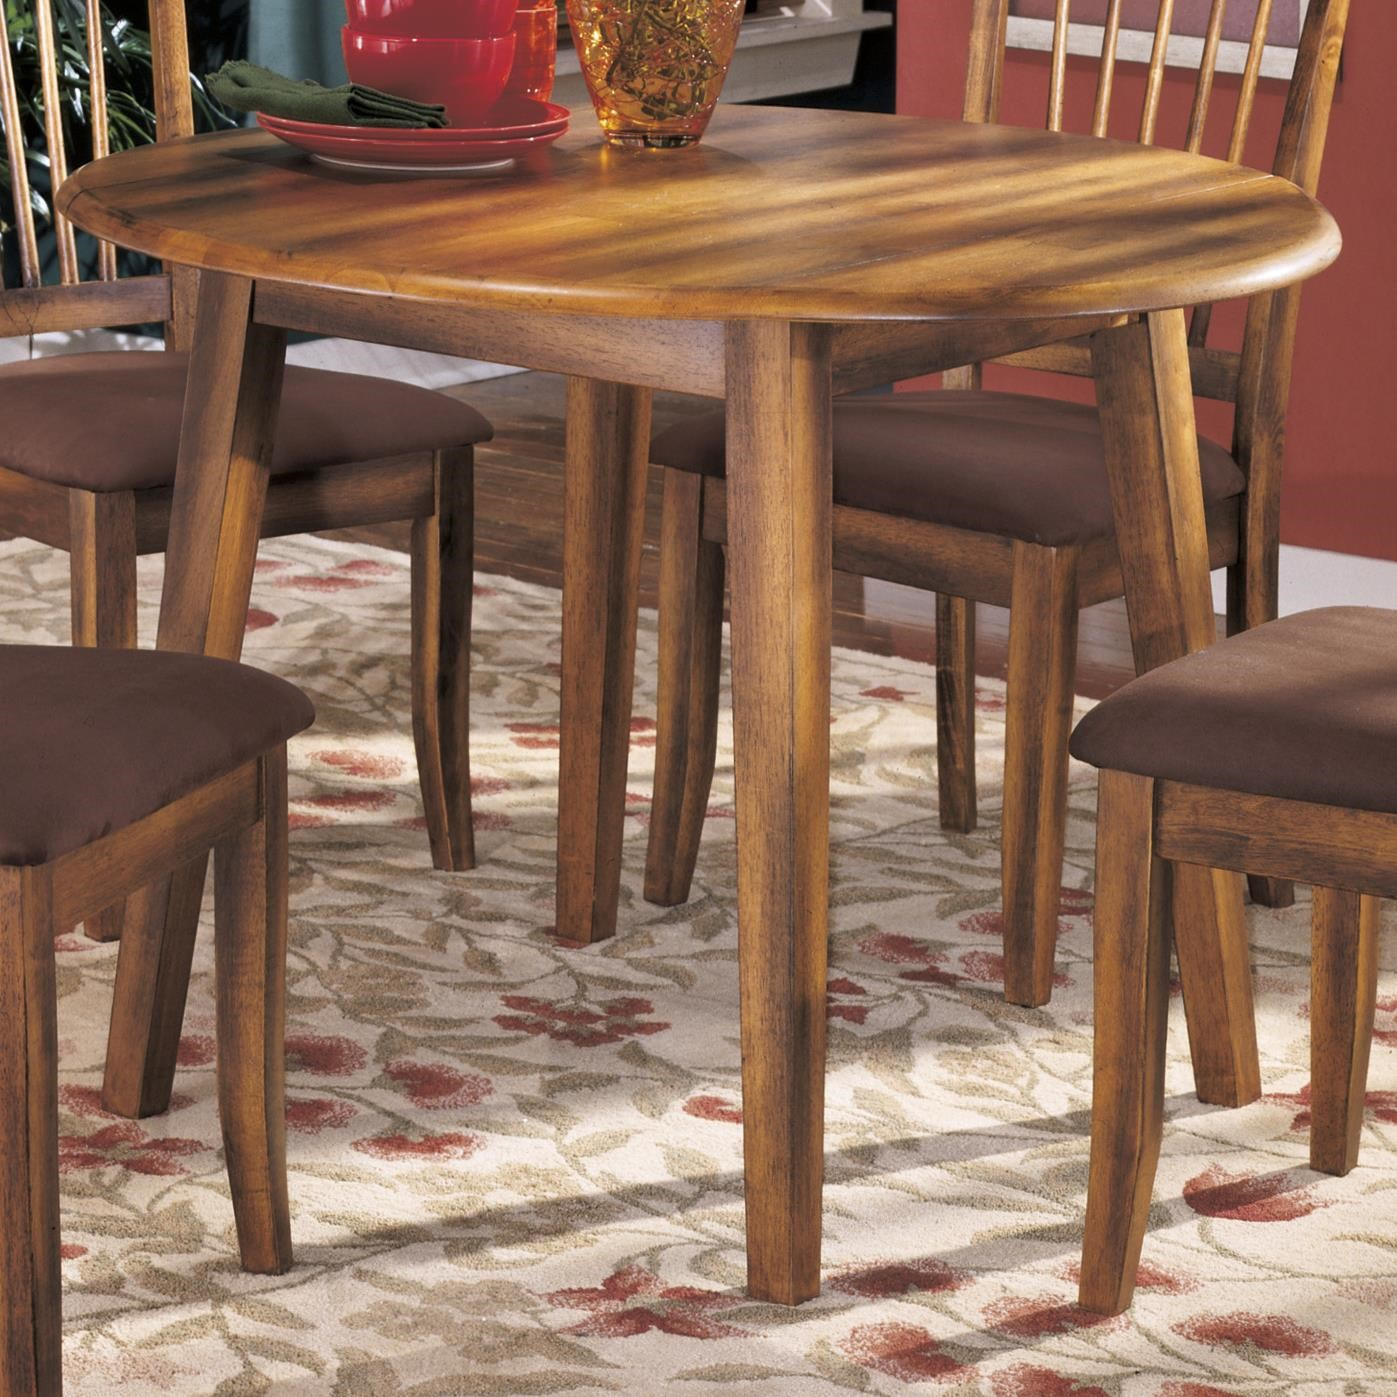 ashley furniture berringer hickory stained hardwood round Ashley Furniture Berringer Table Pricing Ashley Small Drop Leaf Table